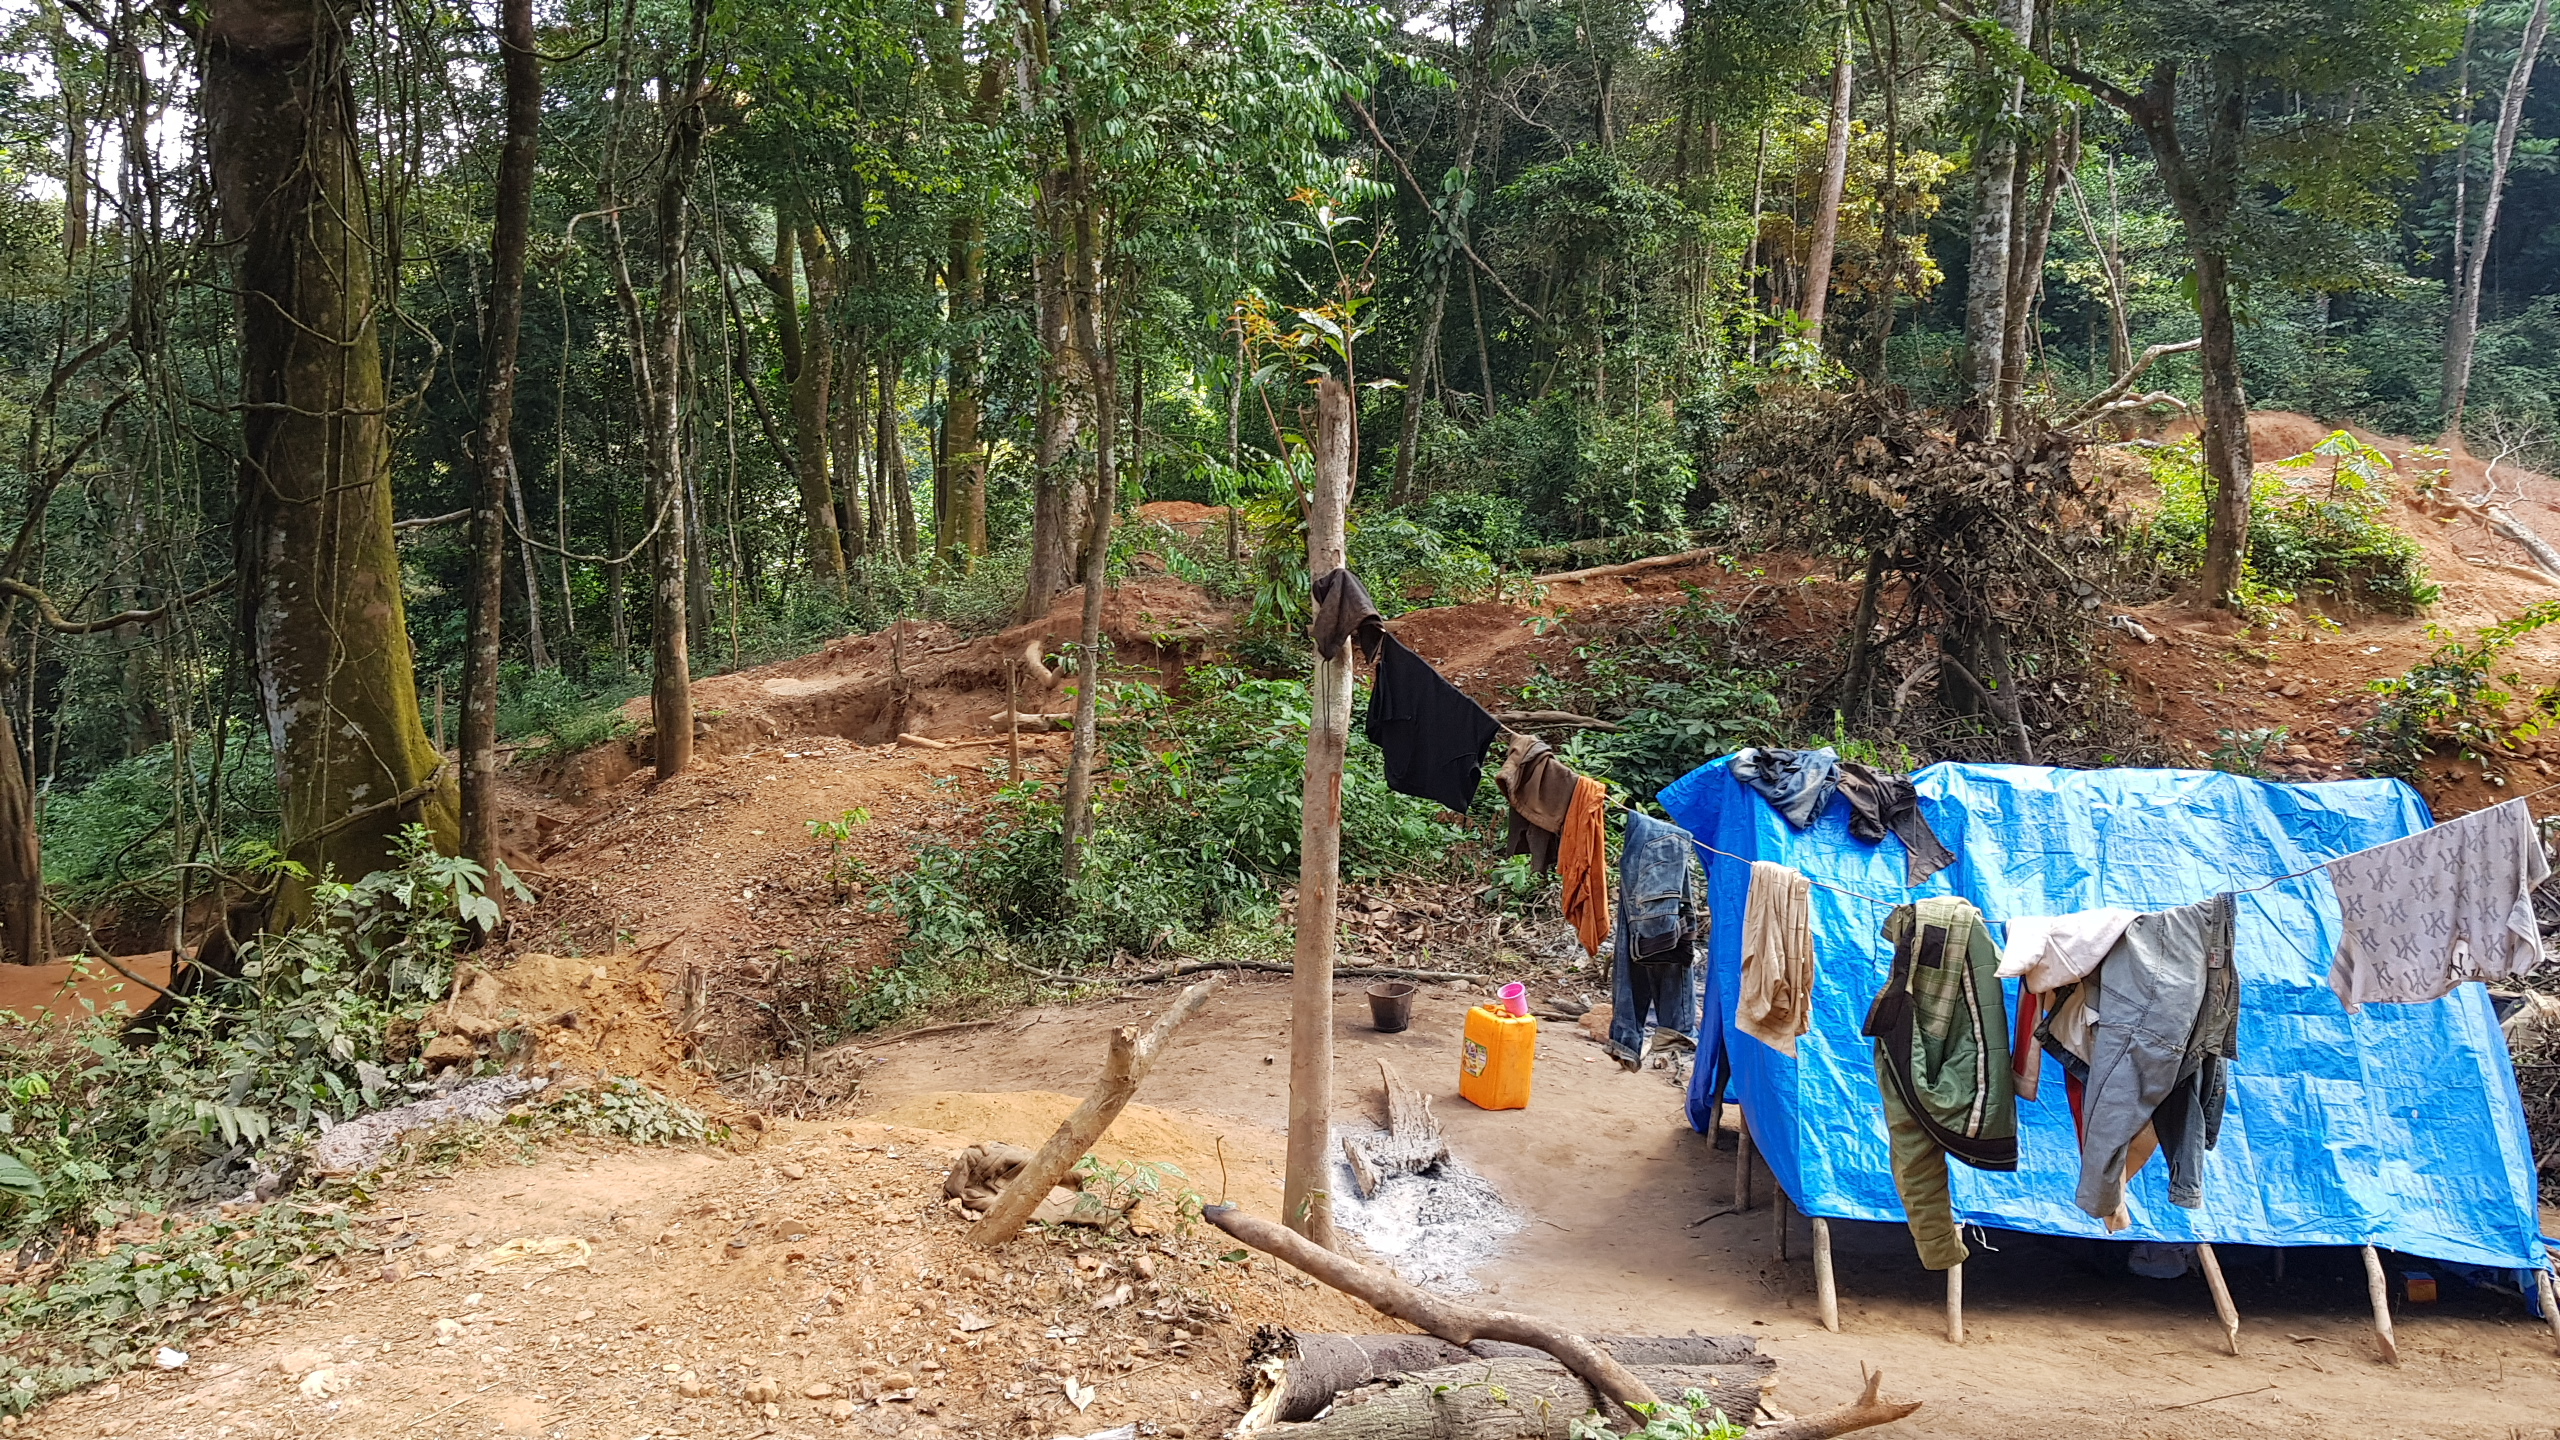 Gold mining in the forest